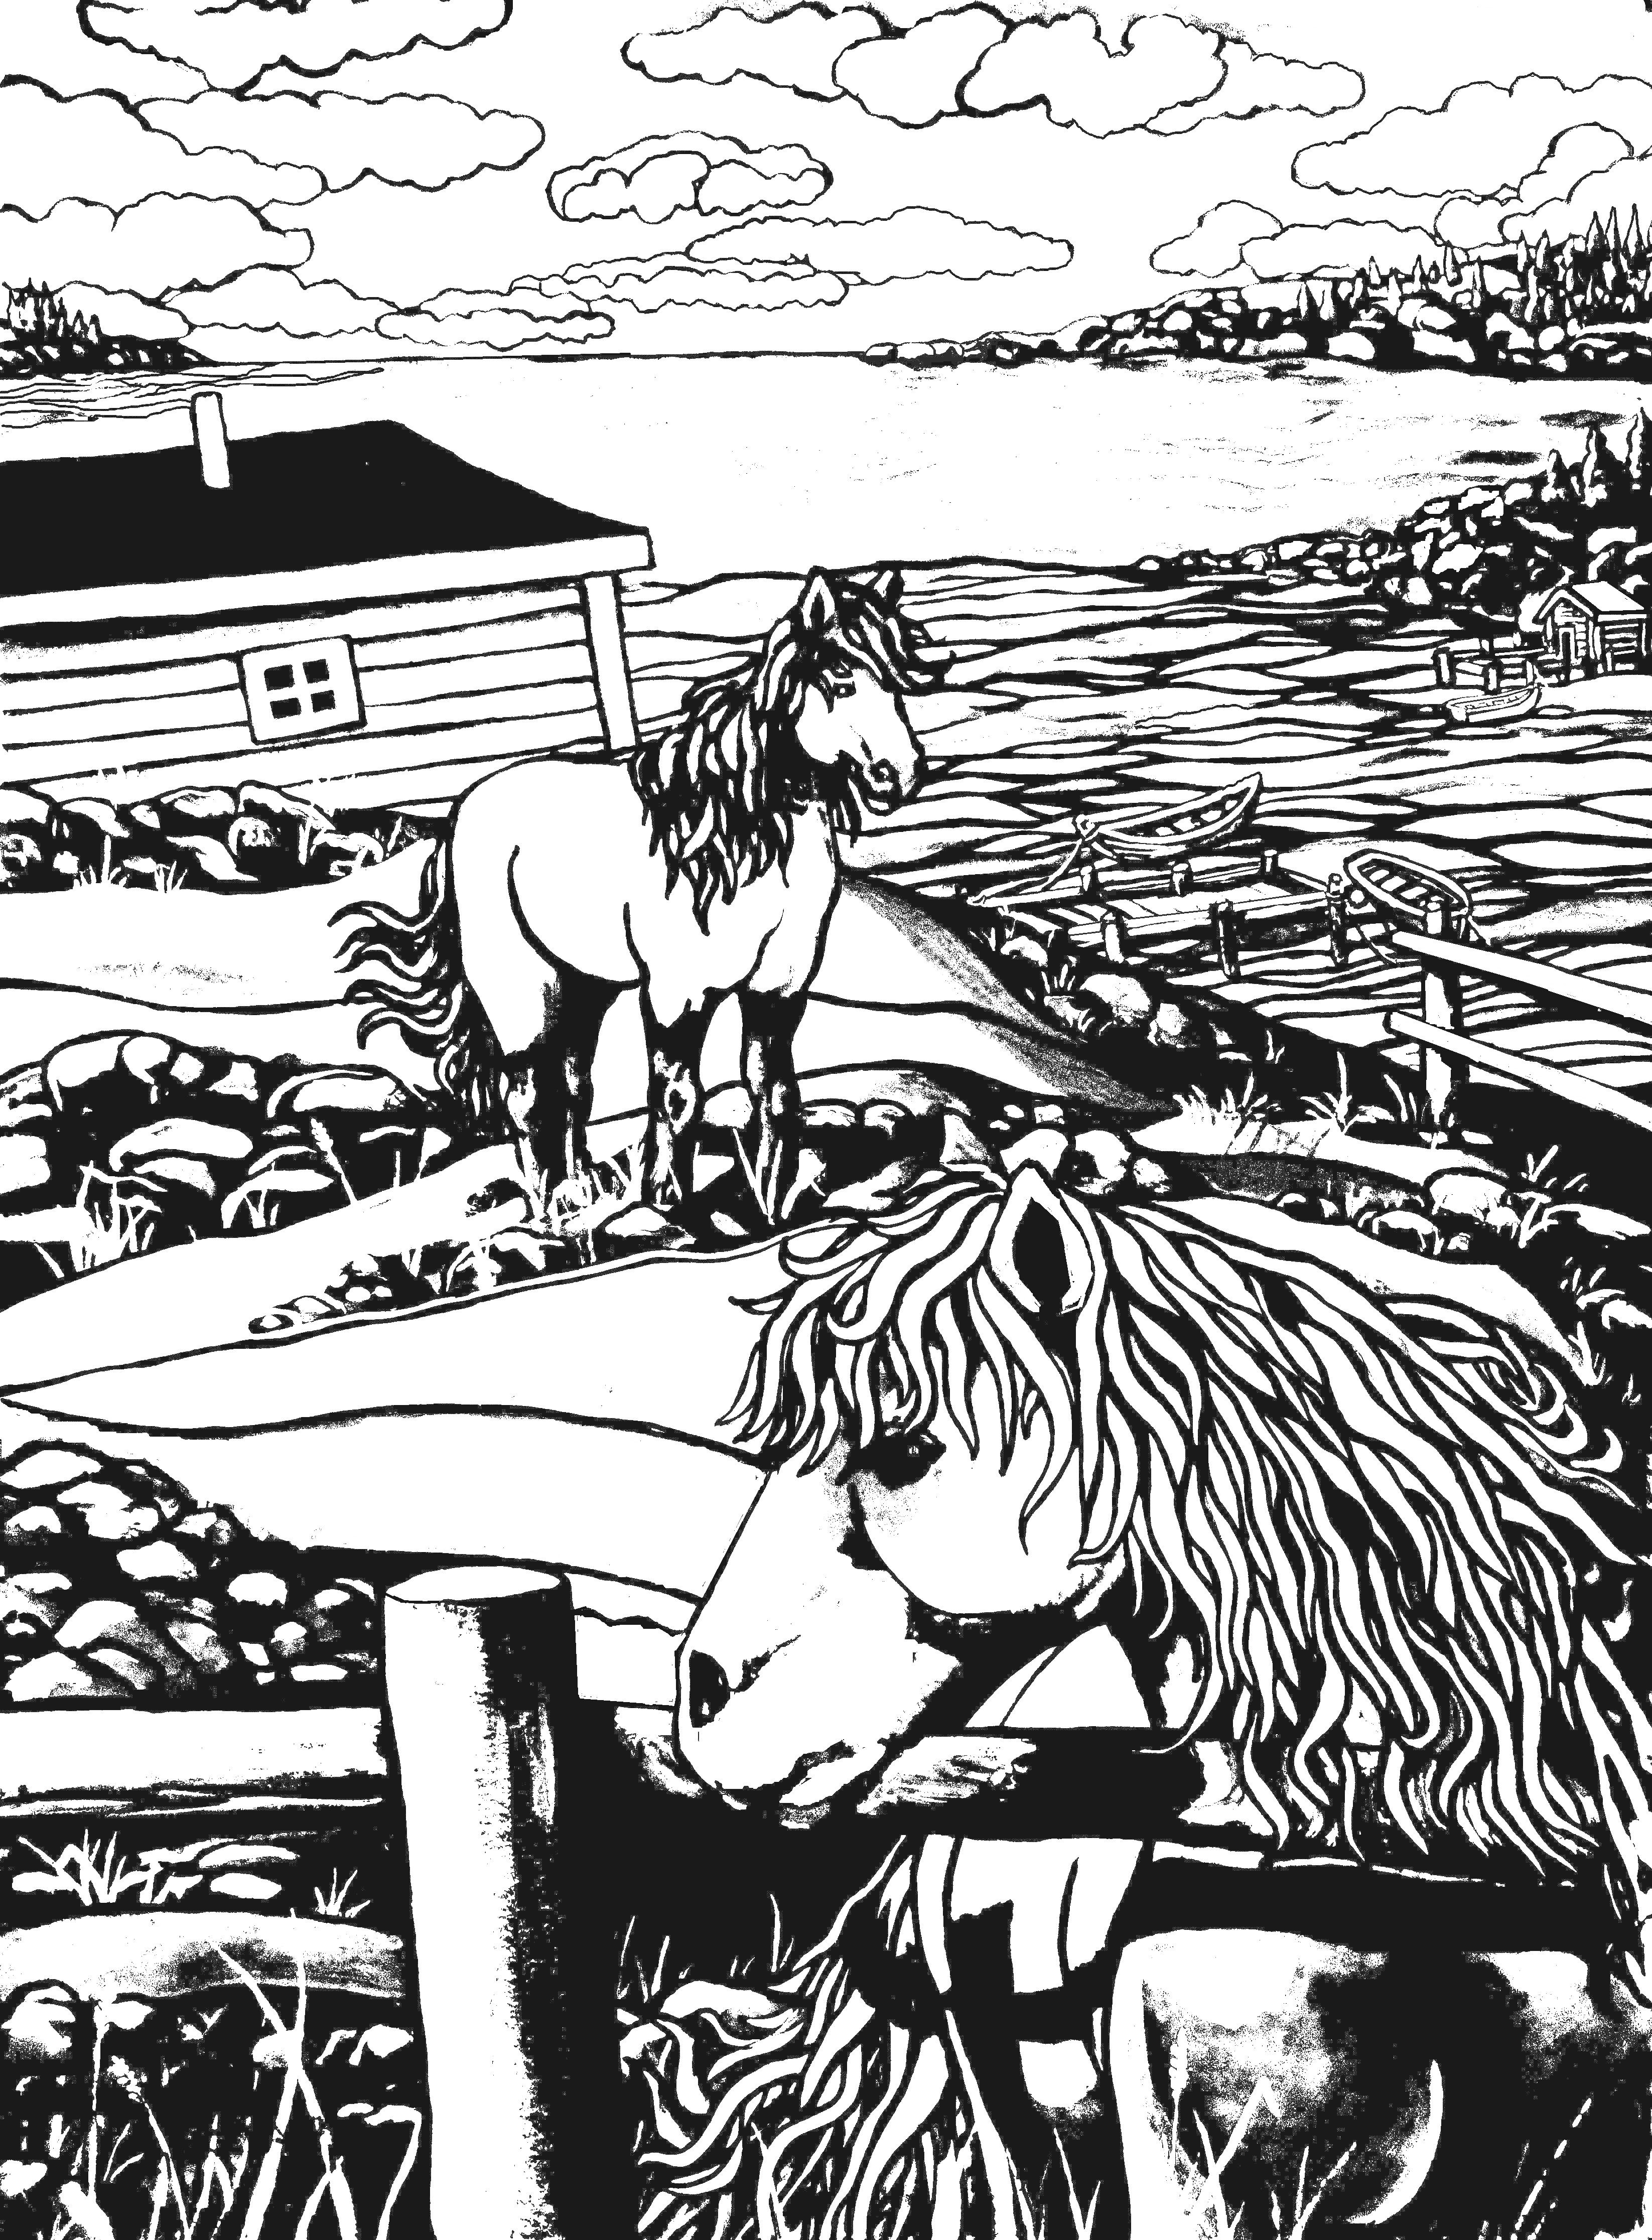 Newfoundland Ponies Colouring Page Featuring The Art Of Reilly Fitzgerald Coloring Colouringbook Coloringbook Coloringsheets